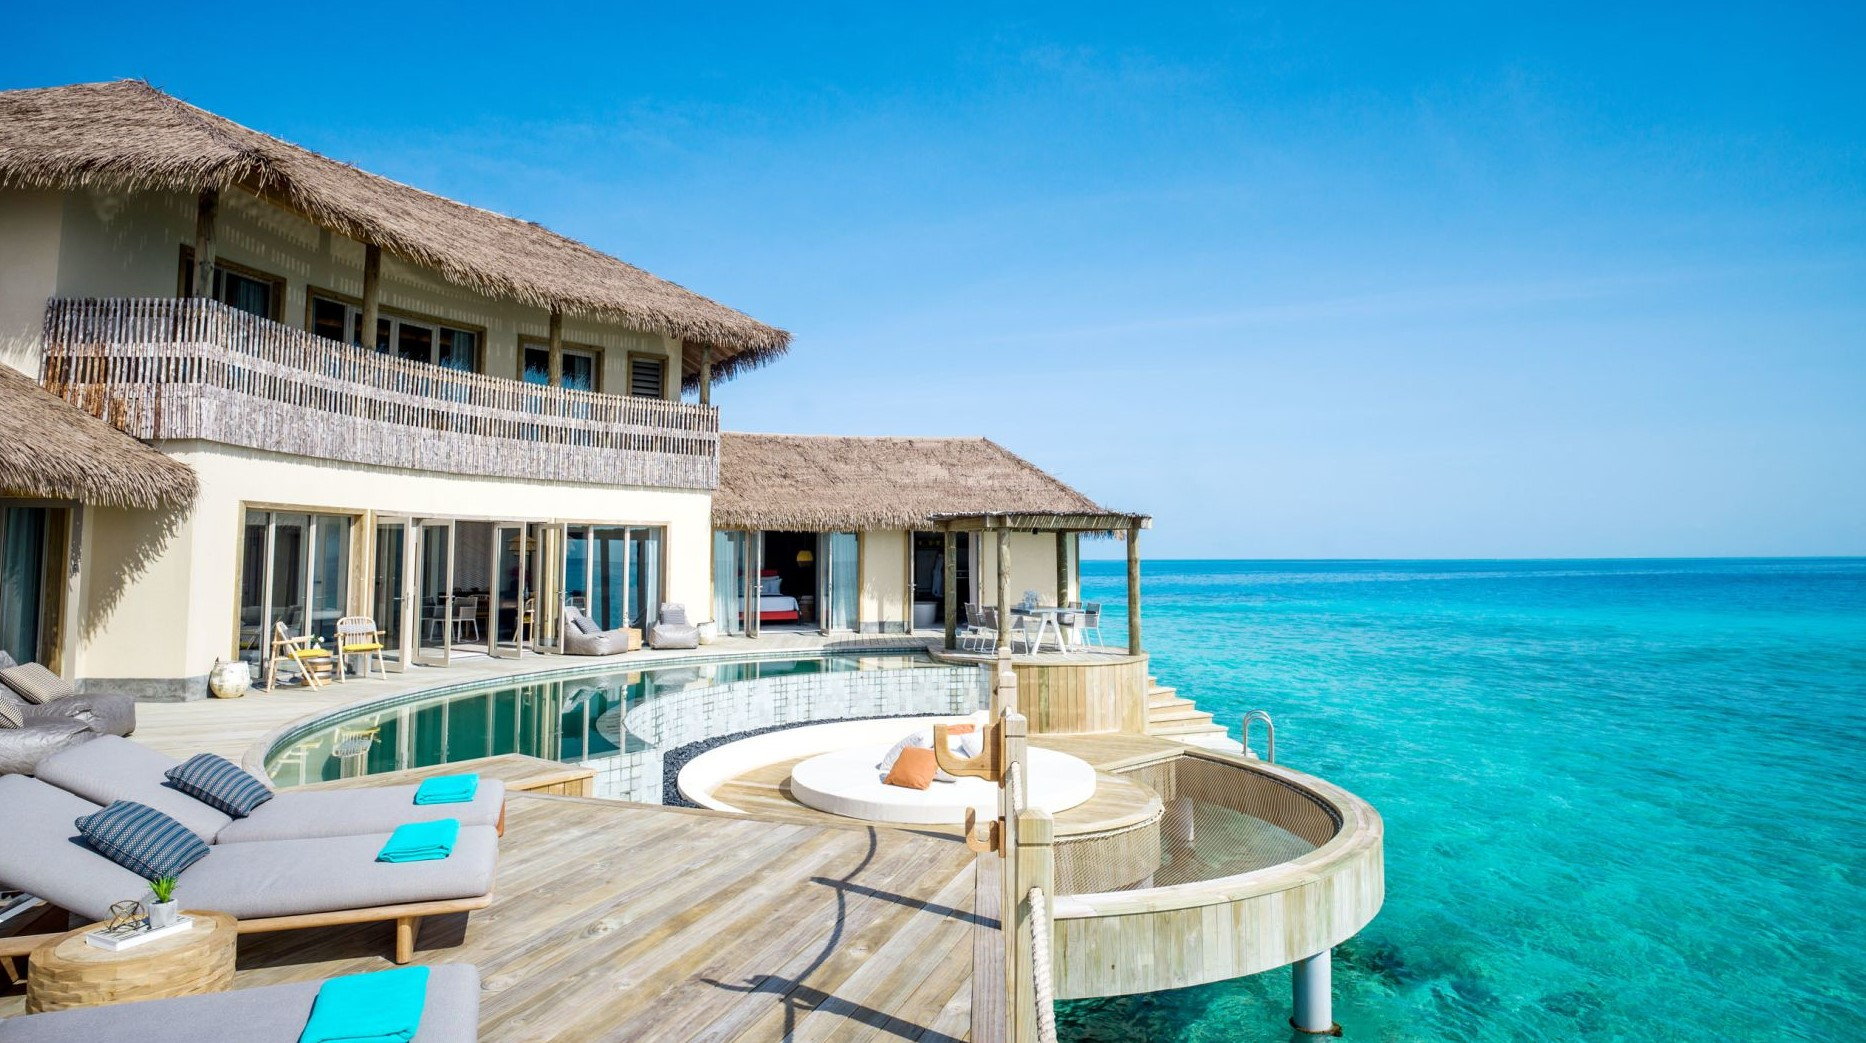 InterContinental Maldives 3 Bedroom Overwater Residence